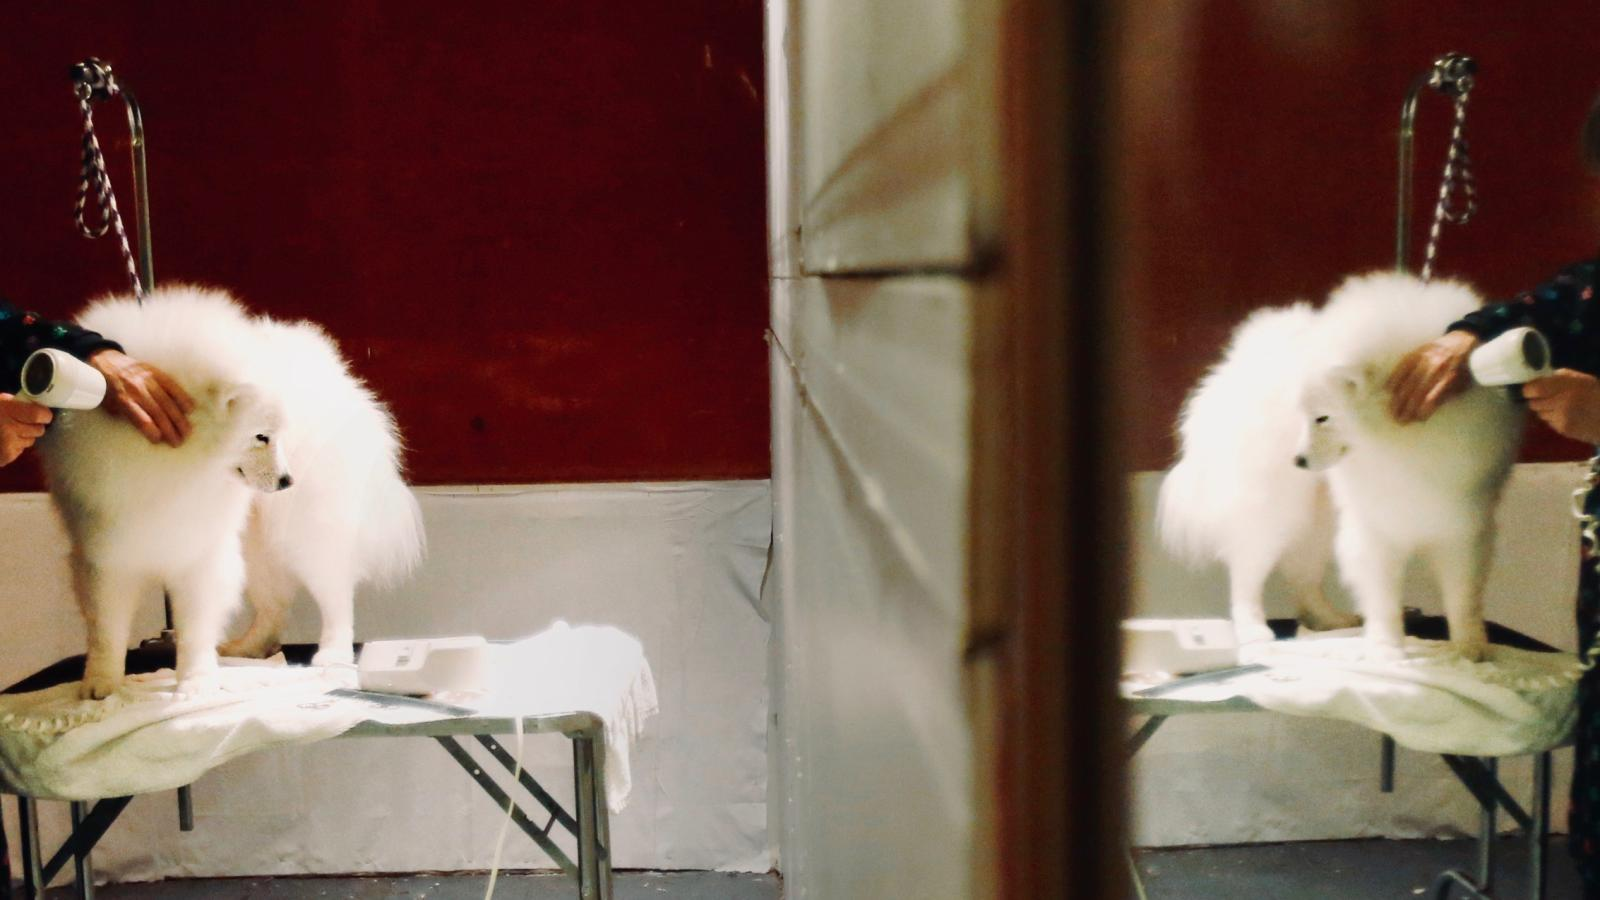 The mirror test for animals reflects the limits of human